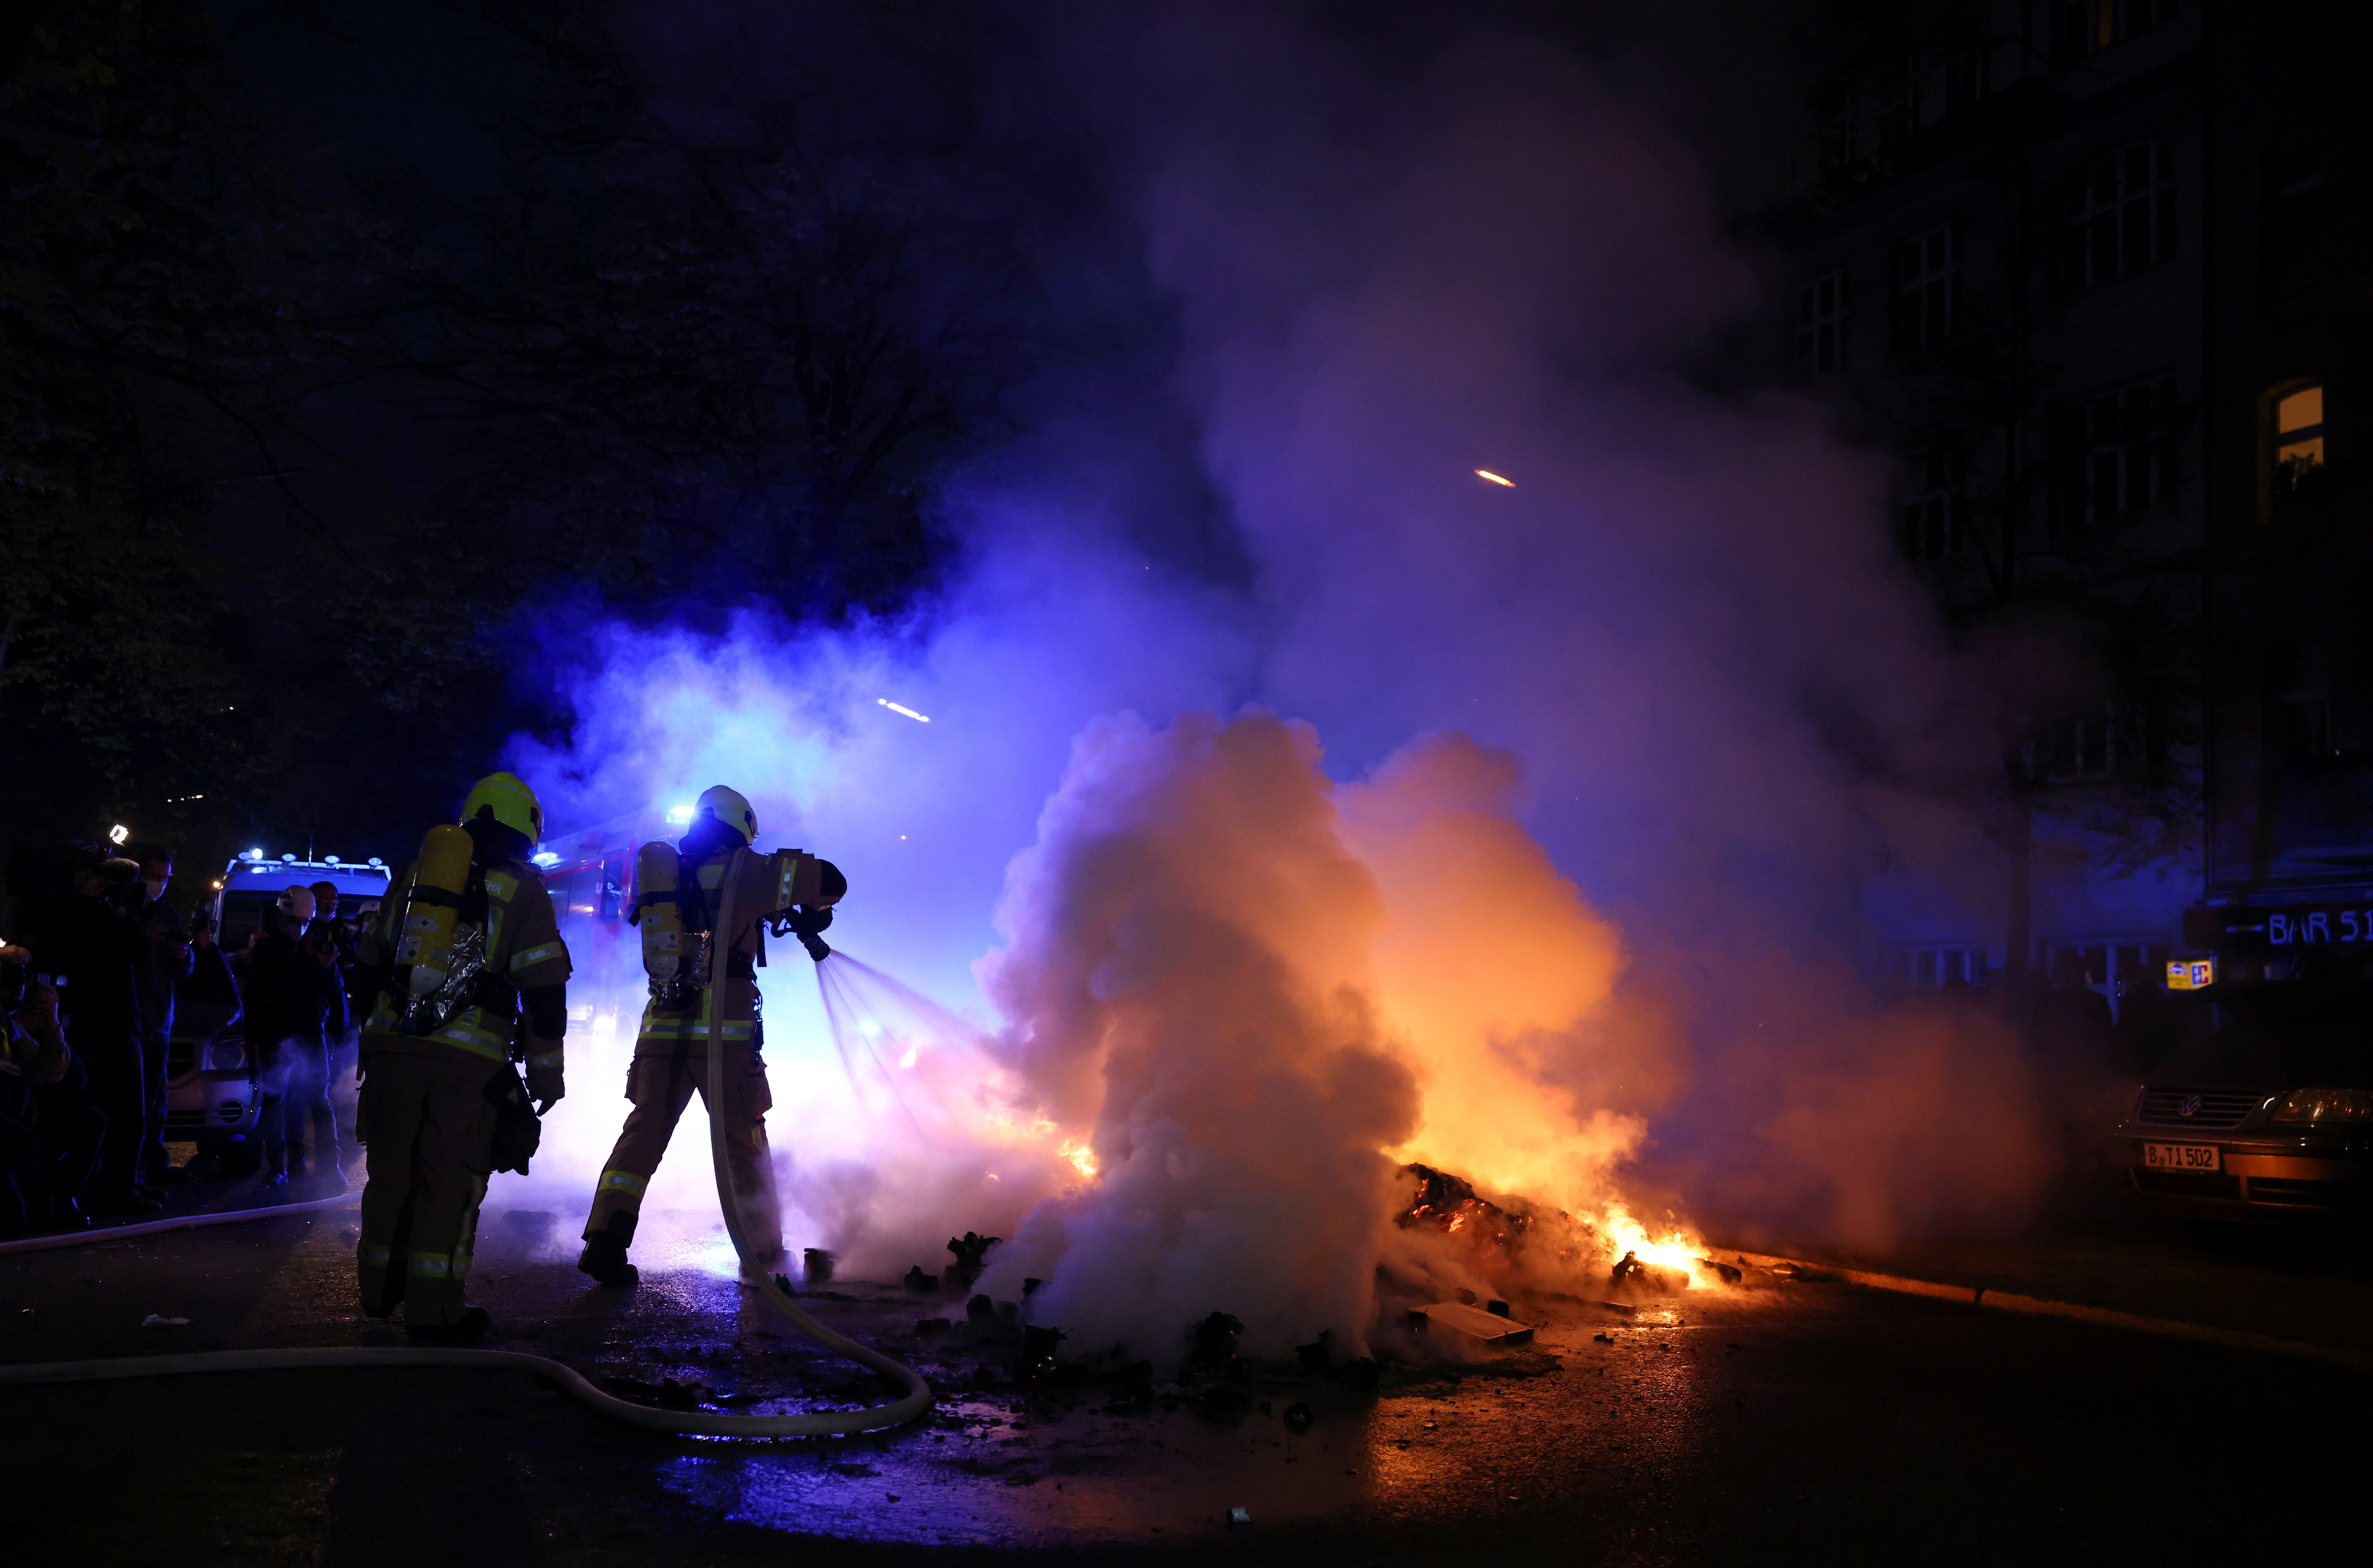 Firefighters work to extinguish a fire during a left-wing May Day demonstration, as the spread of the coronavirus disease (COVID-19) continues in Berlin, Germany, May 1, 2021. REUTERS/Christian Mang